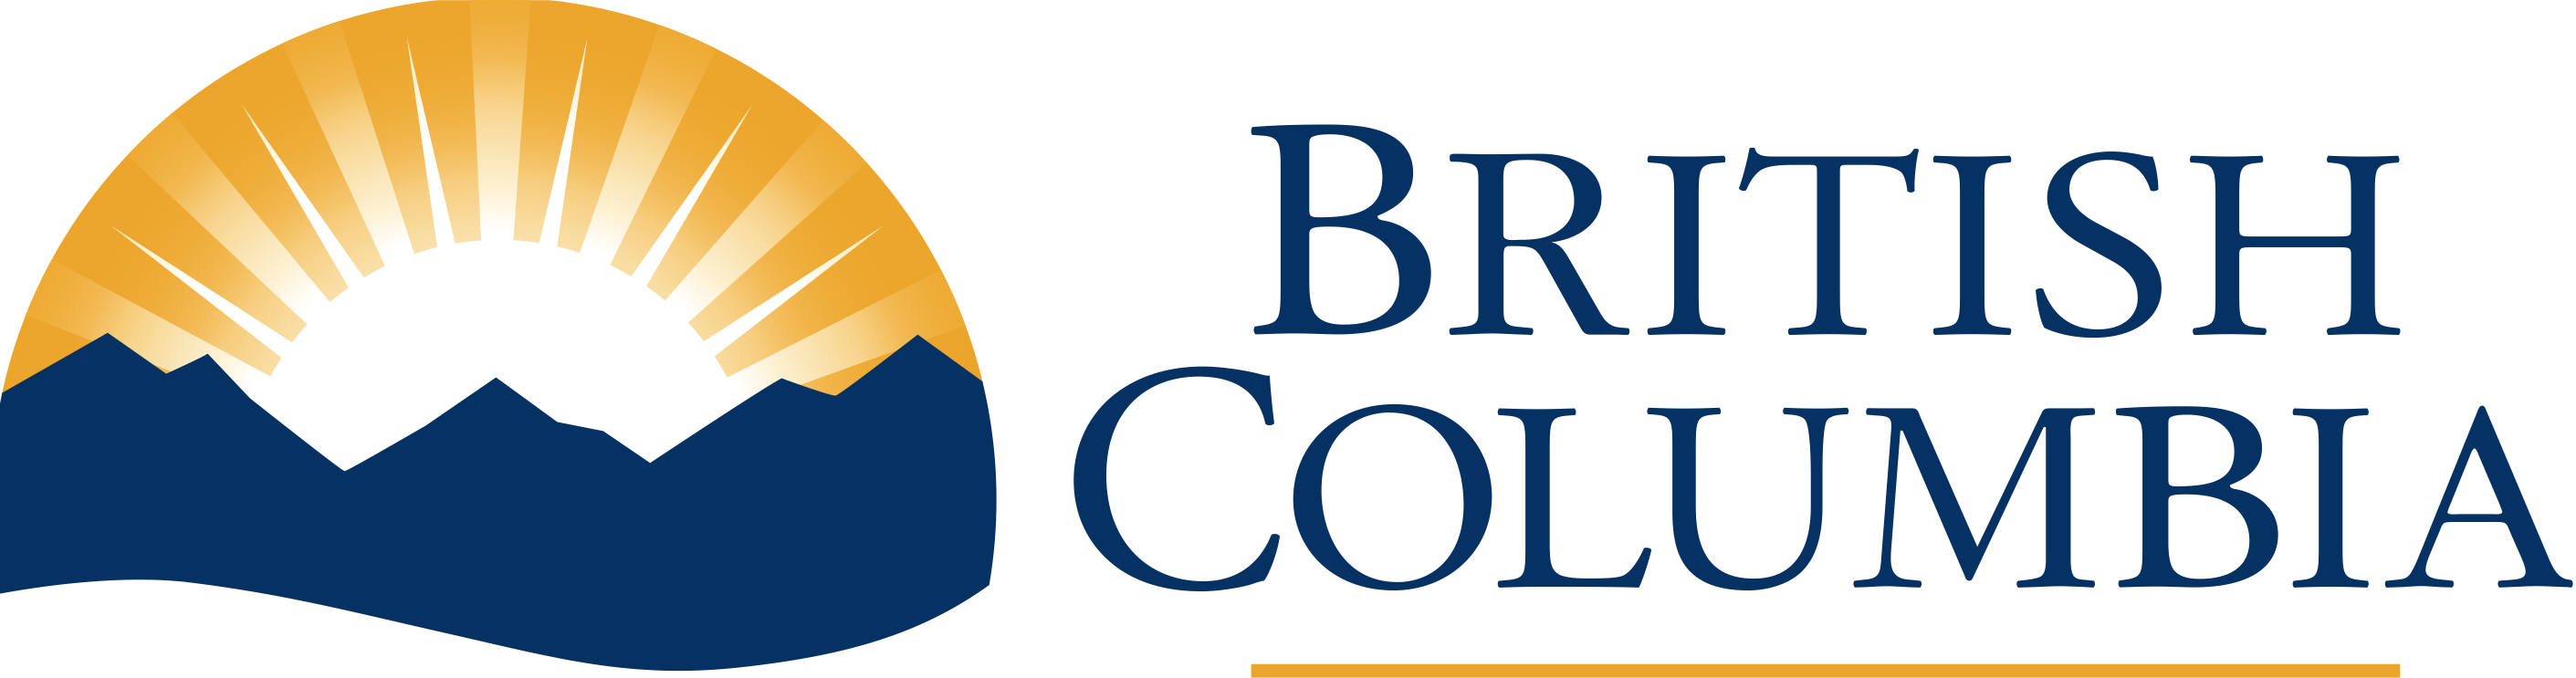 Province-of-BC-logo.png